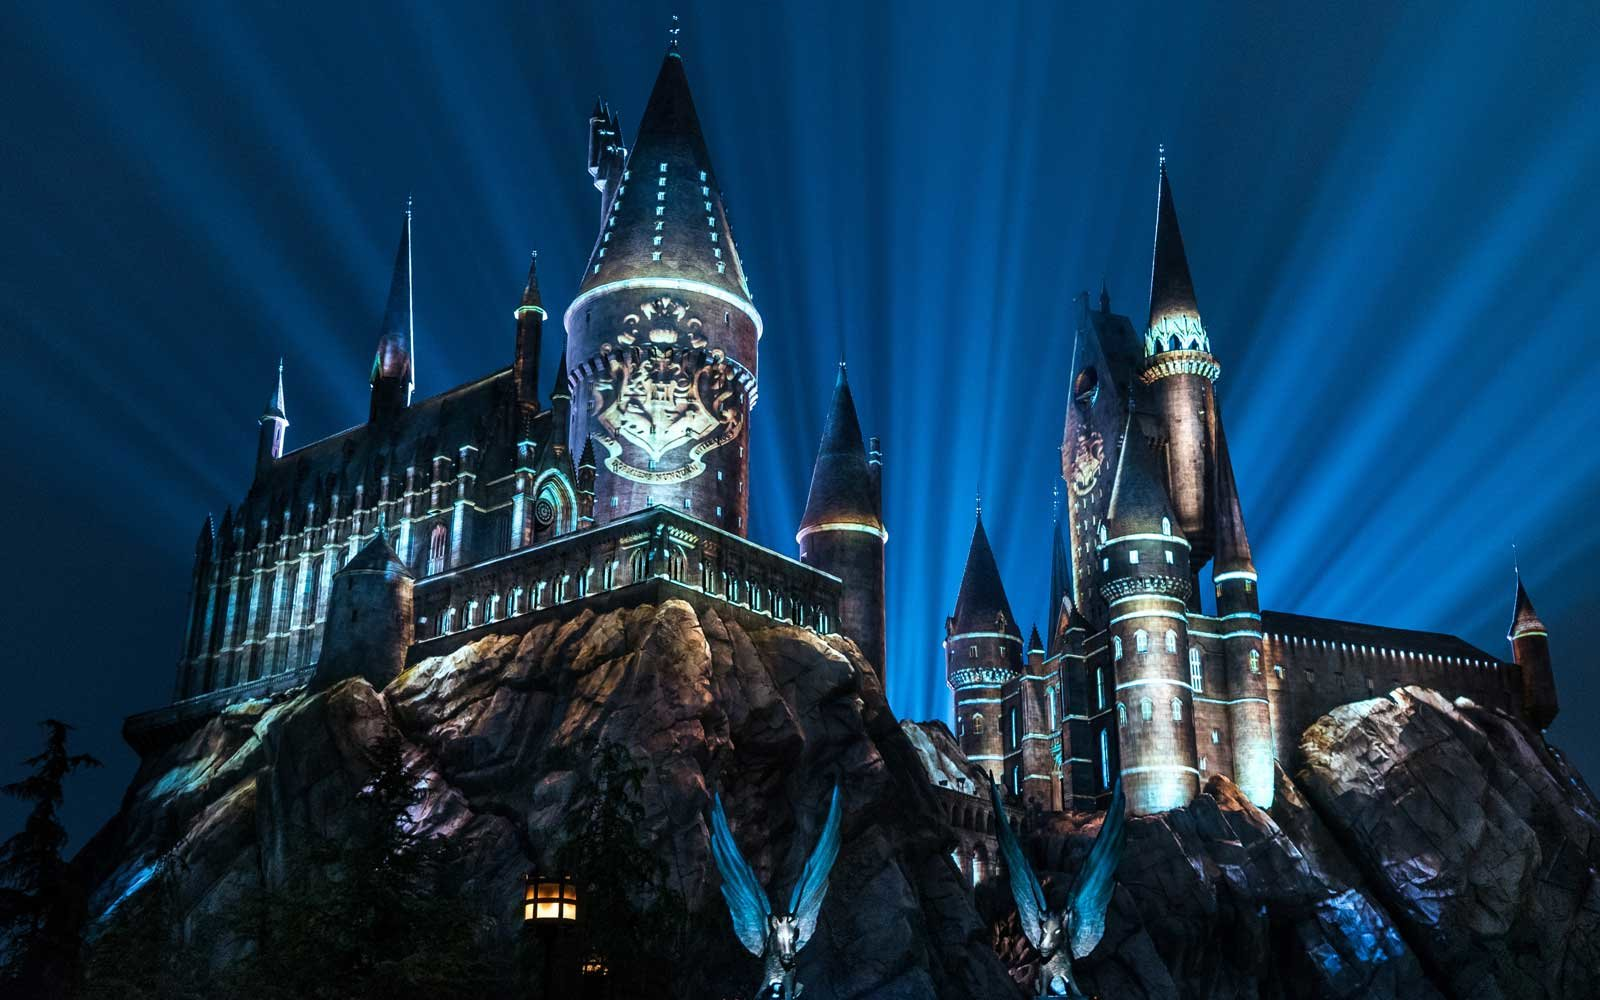 Get A Sneak Peek At The New Roller Coaster At The Wizarding World Of Harry Potter Travel Leisure